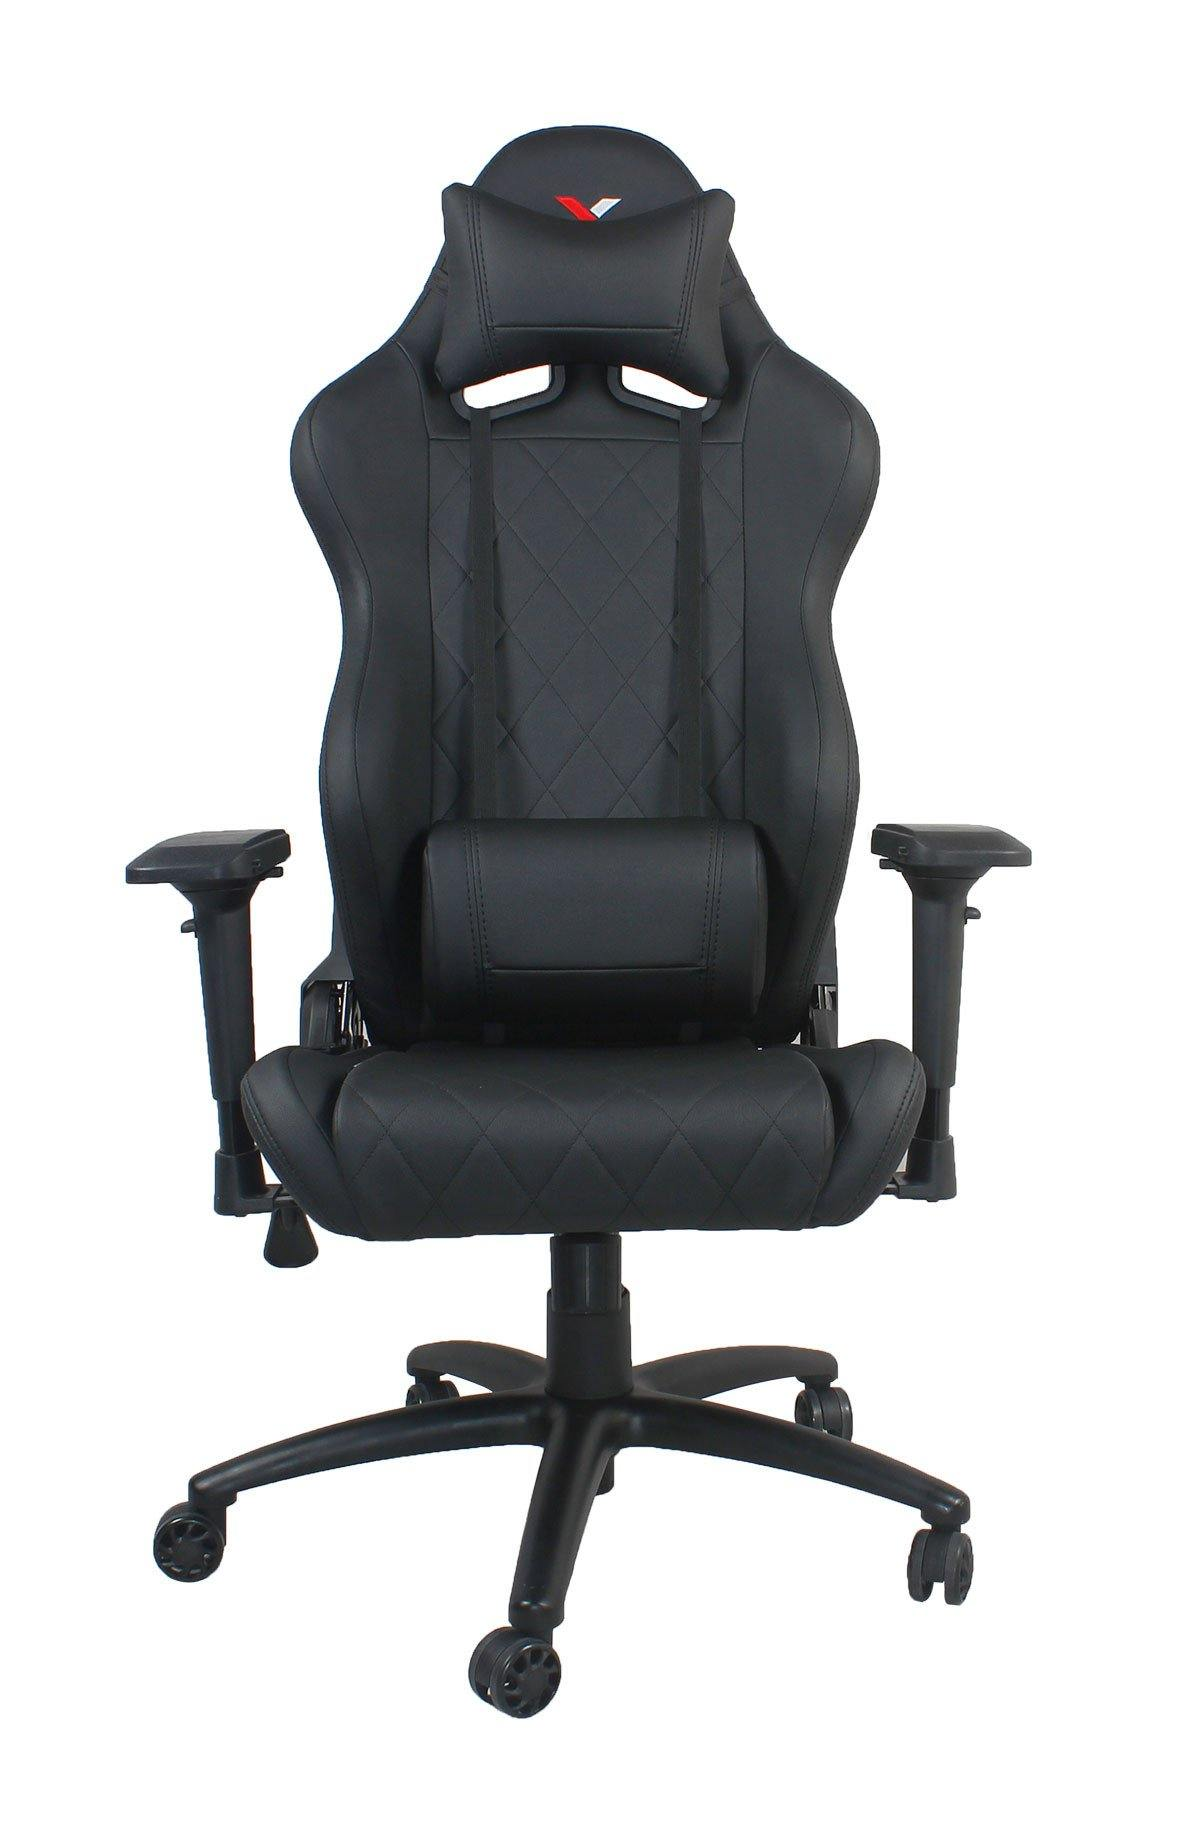 Ferrino Gaming Chair Black on Black – RapidX